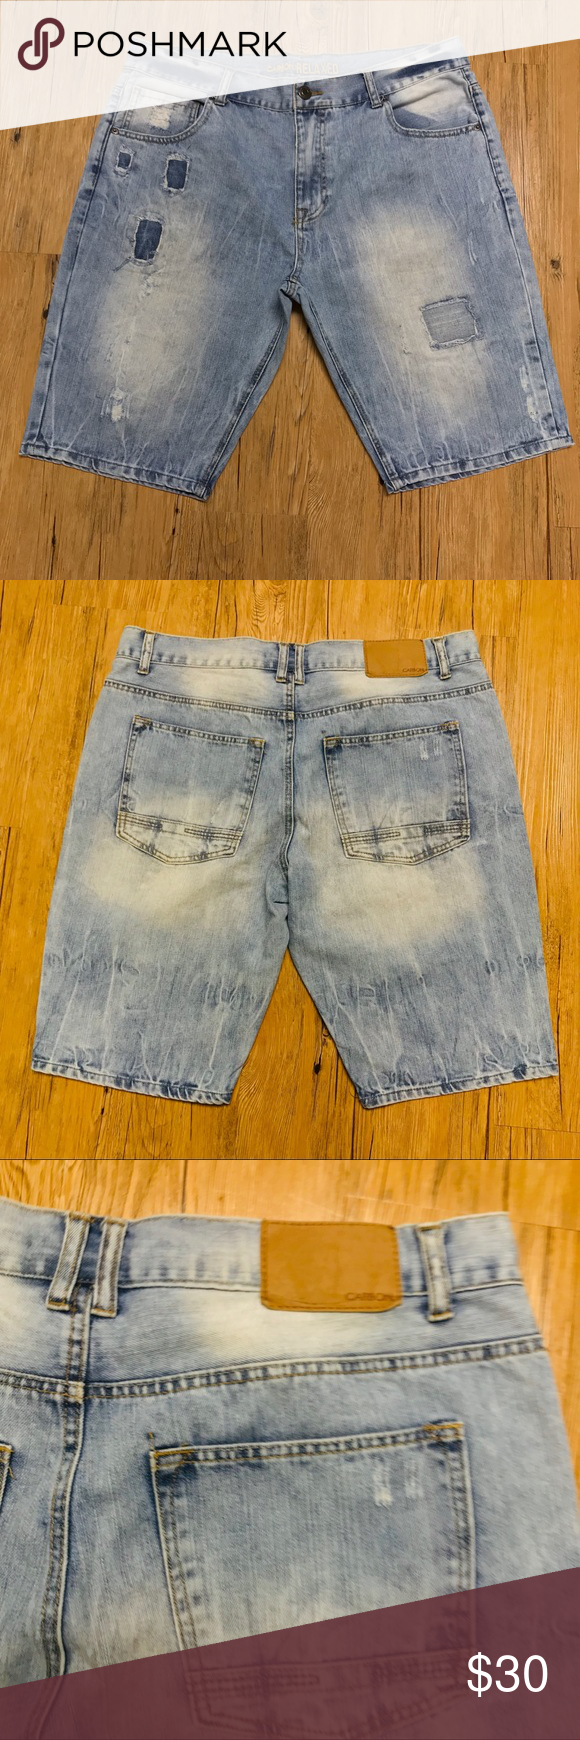 Light blue ash wash men Jean shorts size 36 Carbon light blue ash wash shirts size 36. Designer Ripped denim shorts perfect to pair with a white tee. Preowned in great condition. Carbon Shorts Jean Shorts #lightblueshorts